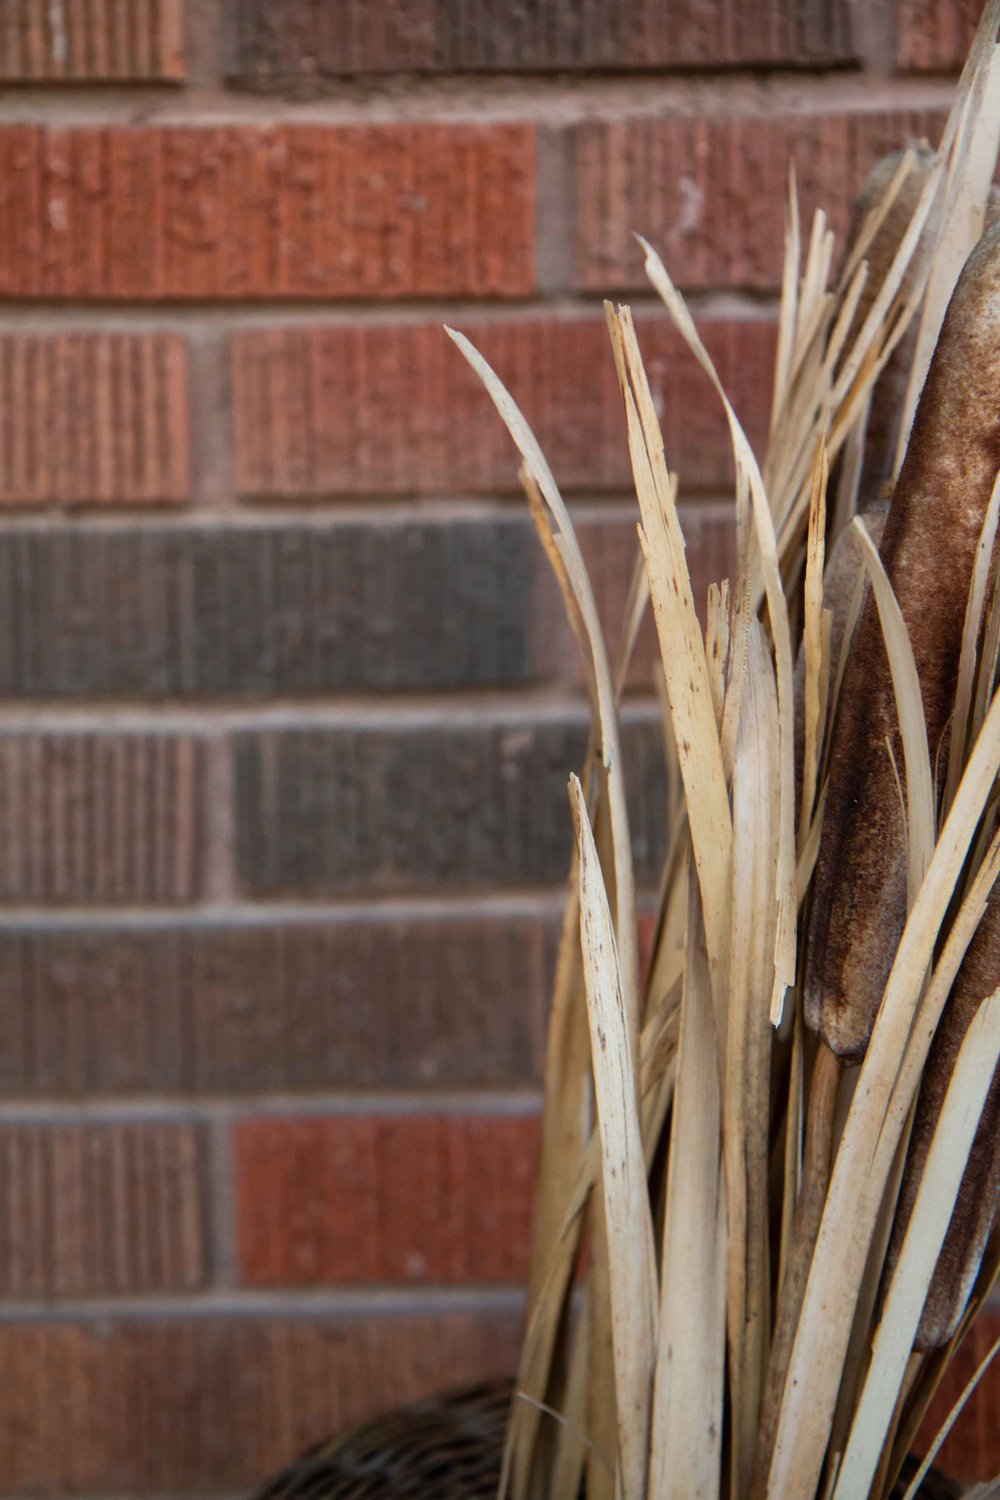 Brick and cattails